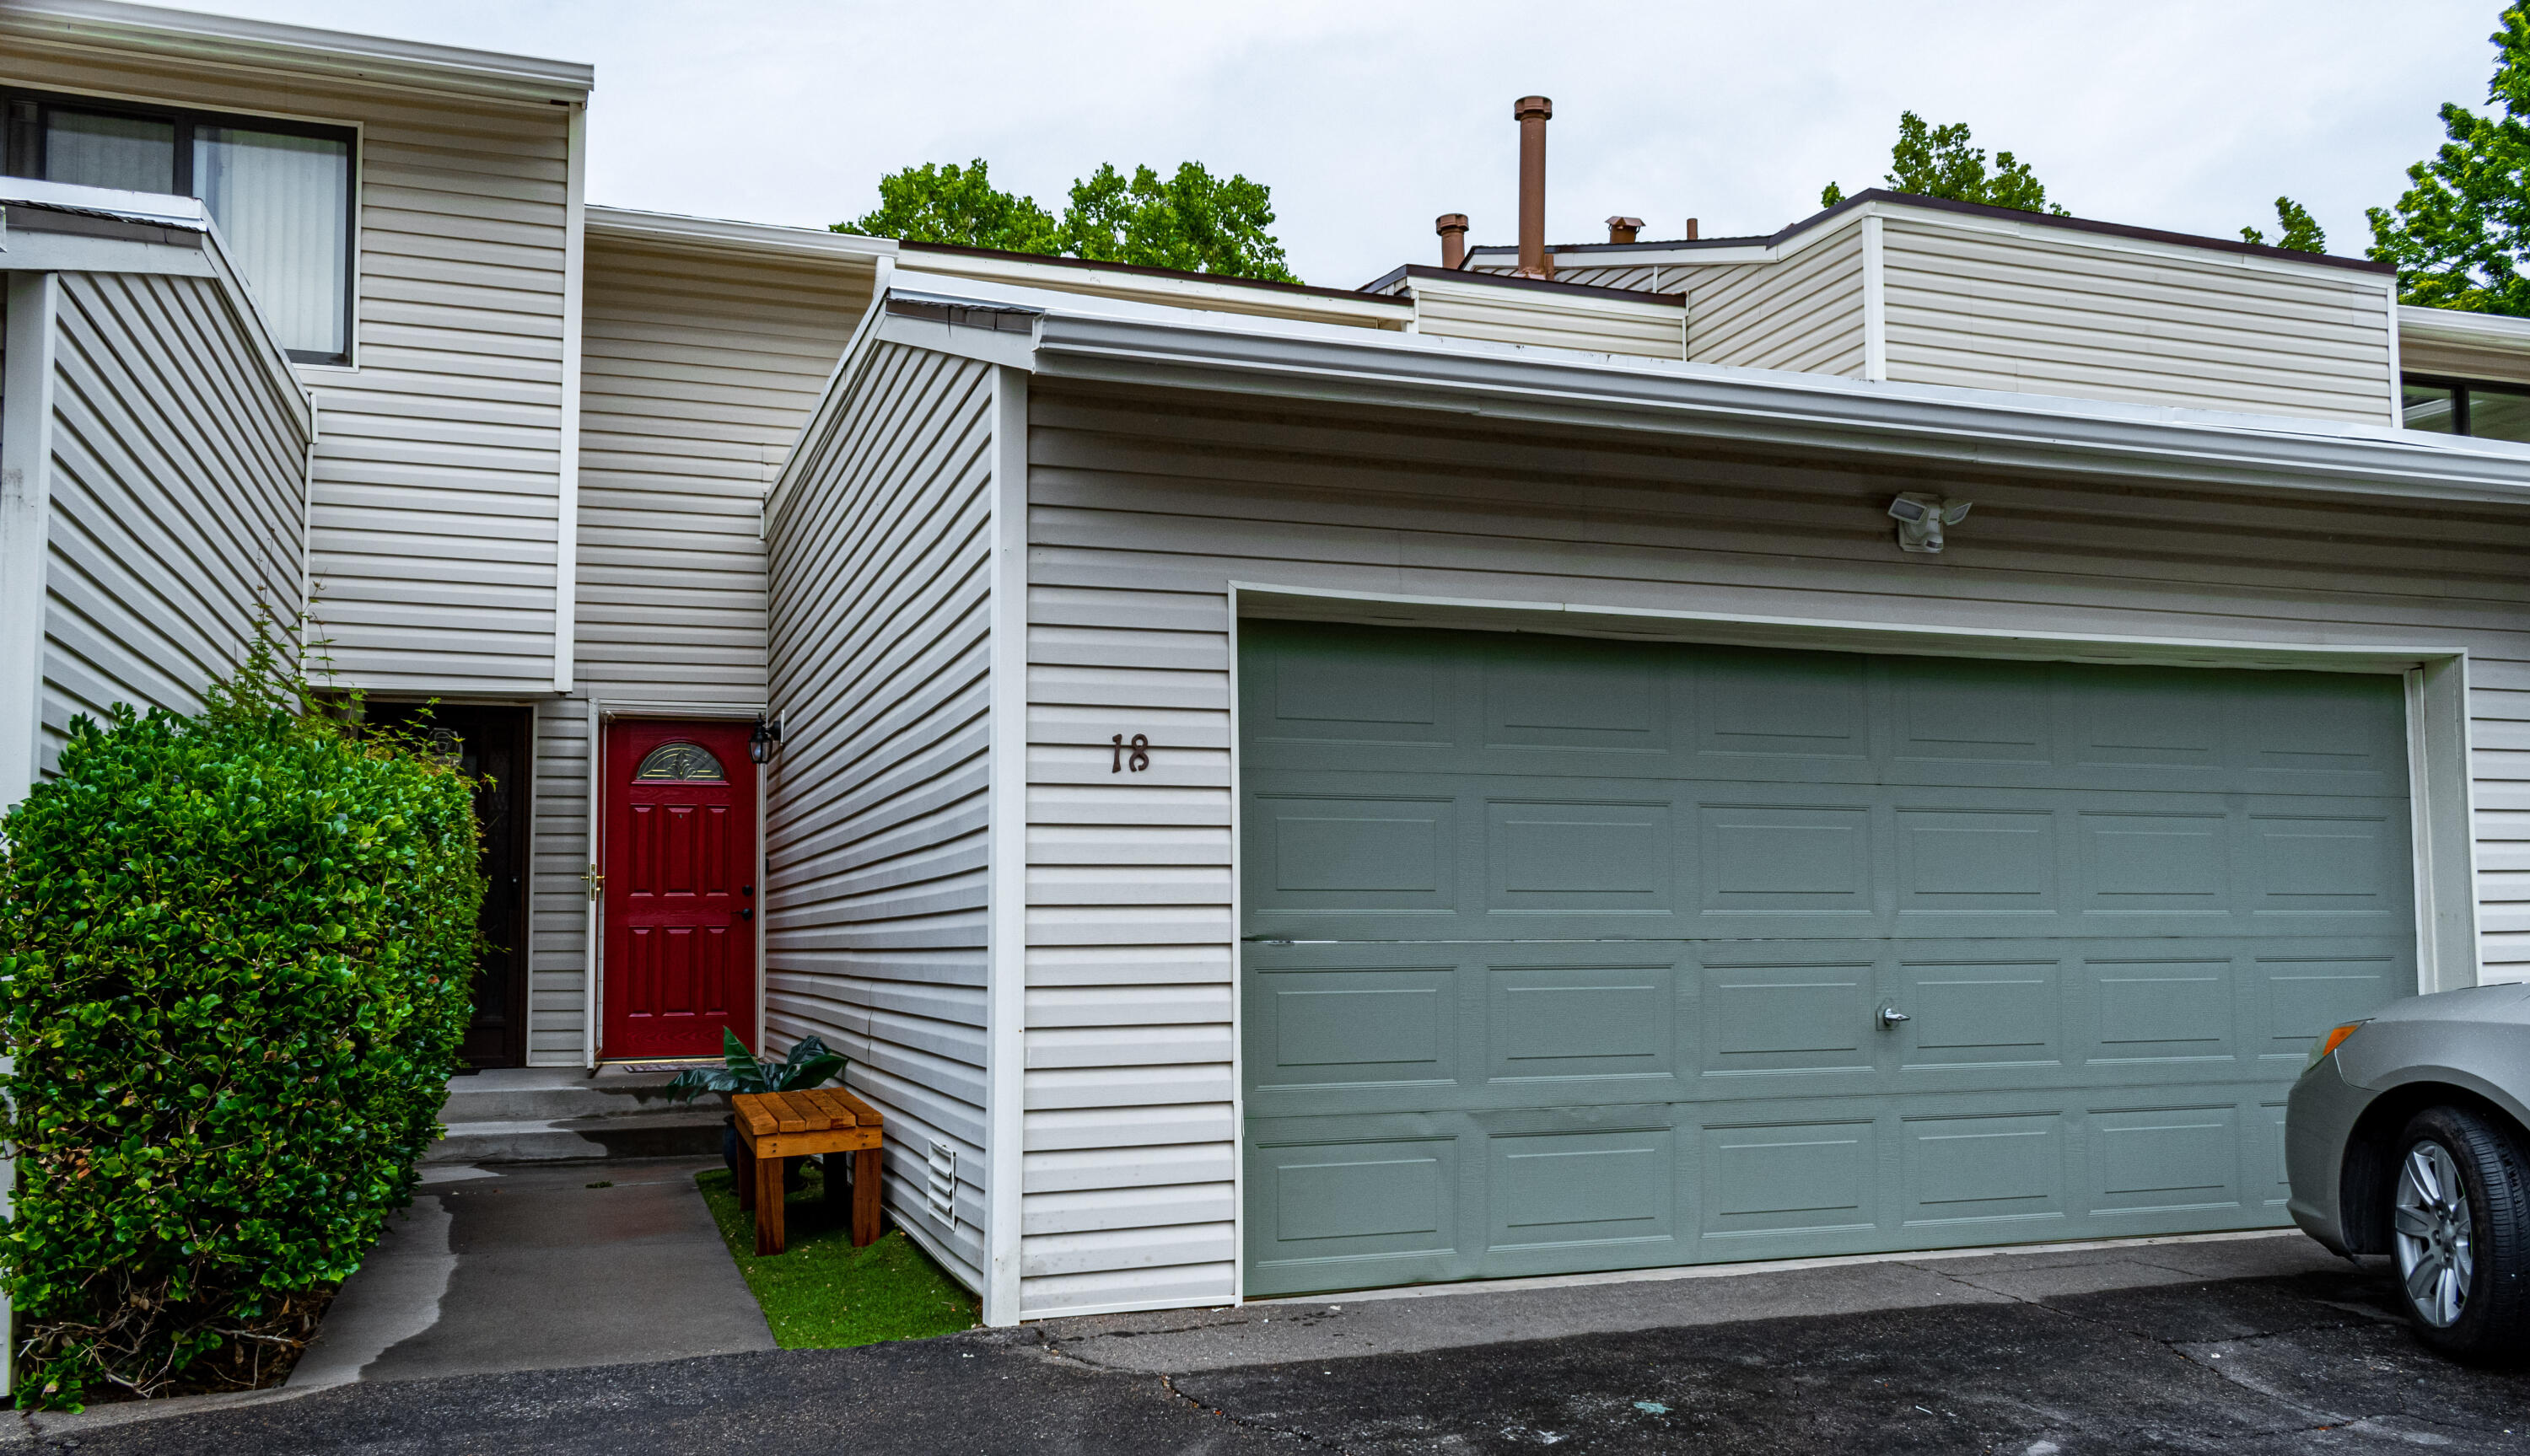 Fabulous, stylish townhome in the beautiful Shores Community. A cozy, chic and sensible 2/possible 3-bedroom retreat, centrally located with super easy access to ABQ Uptown. Back patio overlooks lush, grassy hills with mature trees, lakes and fountains... and you don't have to maintain ANY of that landscaping! Brand new TPO roofing. Refrigerated air, hardwood floors,  nice bright foodie's kitchen with 2 pantries, finished basement space could be large 3rd bedroom, recreation room or second living area. Extra features include WIFI controlled thermostat (Ecobee), bluetooth speaker in bathroom lights. Community amenities include pool, 2 tennis courts, clubhouse, mini golf. All appliances convey. Flooring allowance may be considered with strong offer. Come see it today!